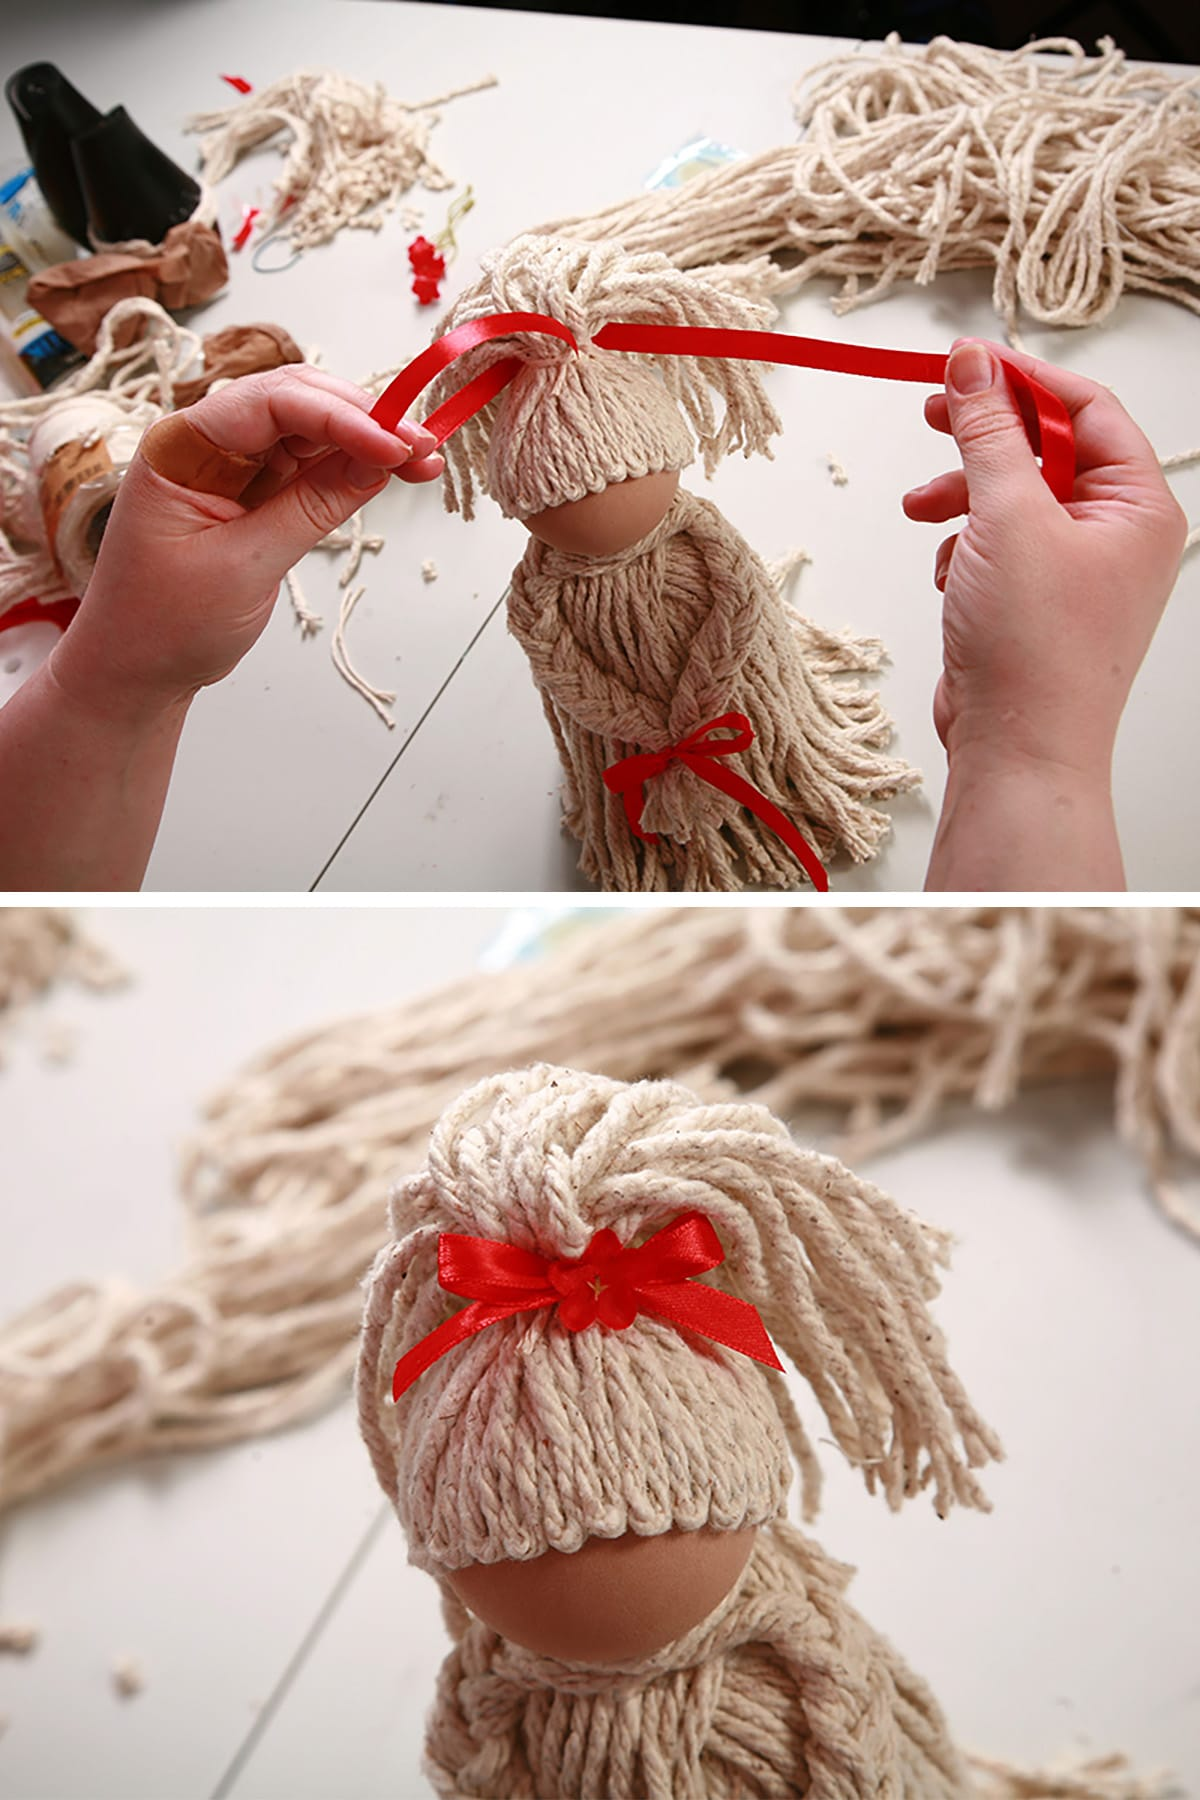 A red ribbon being tied around the ponytail to form a bow.